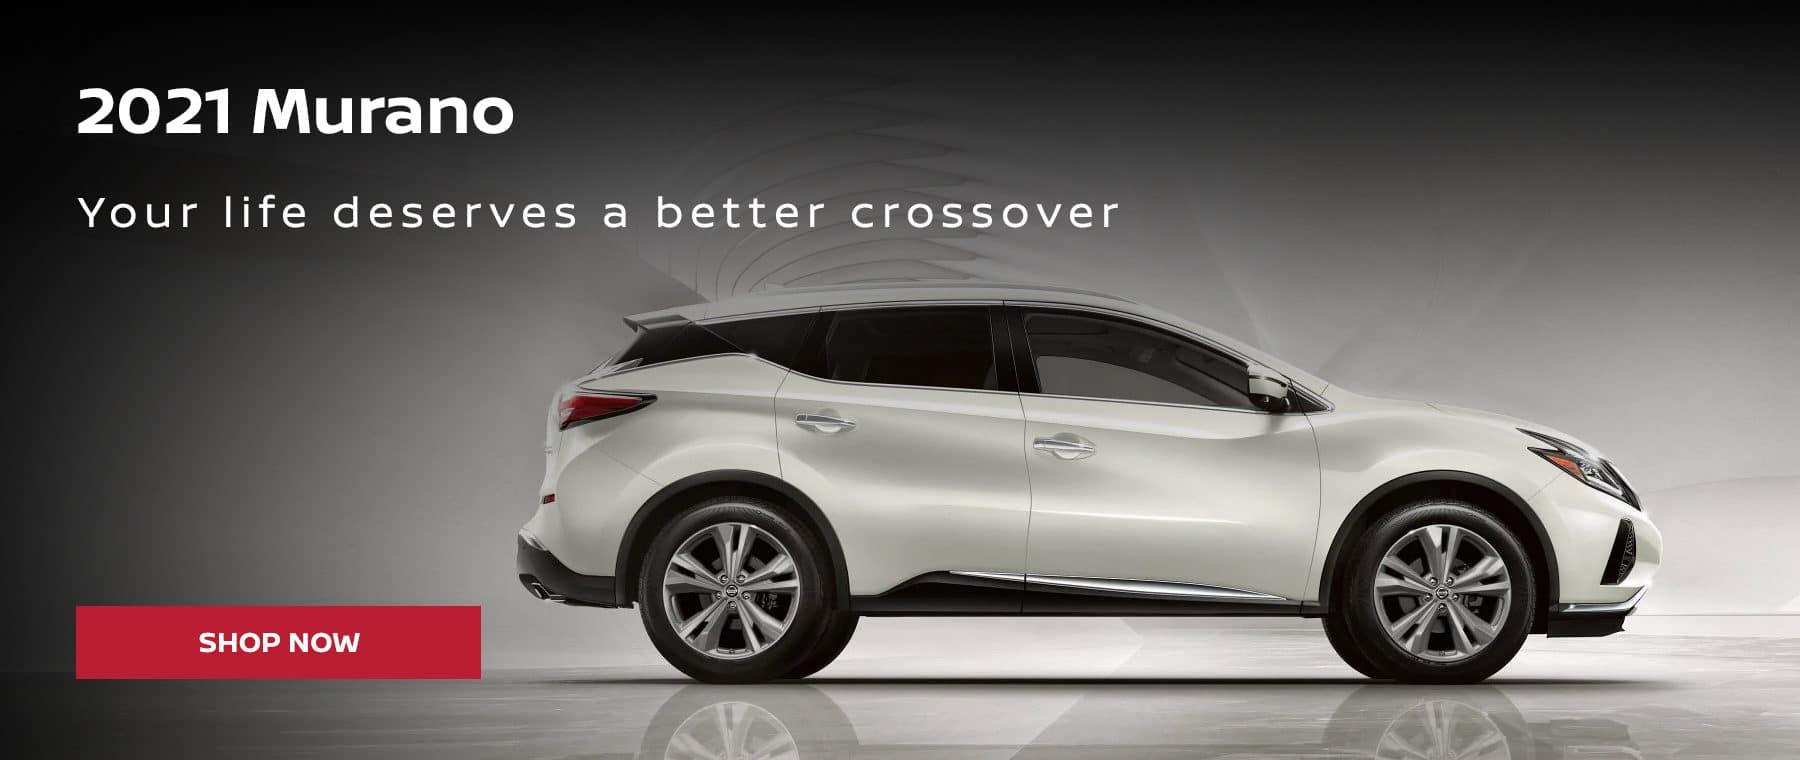 2021 Murano Your life deserves a better crossover